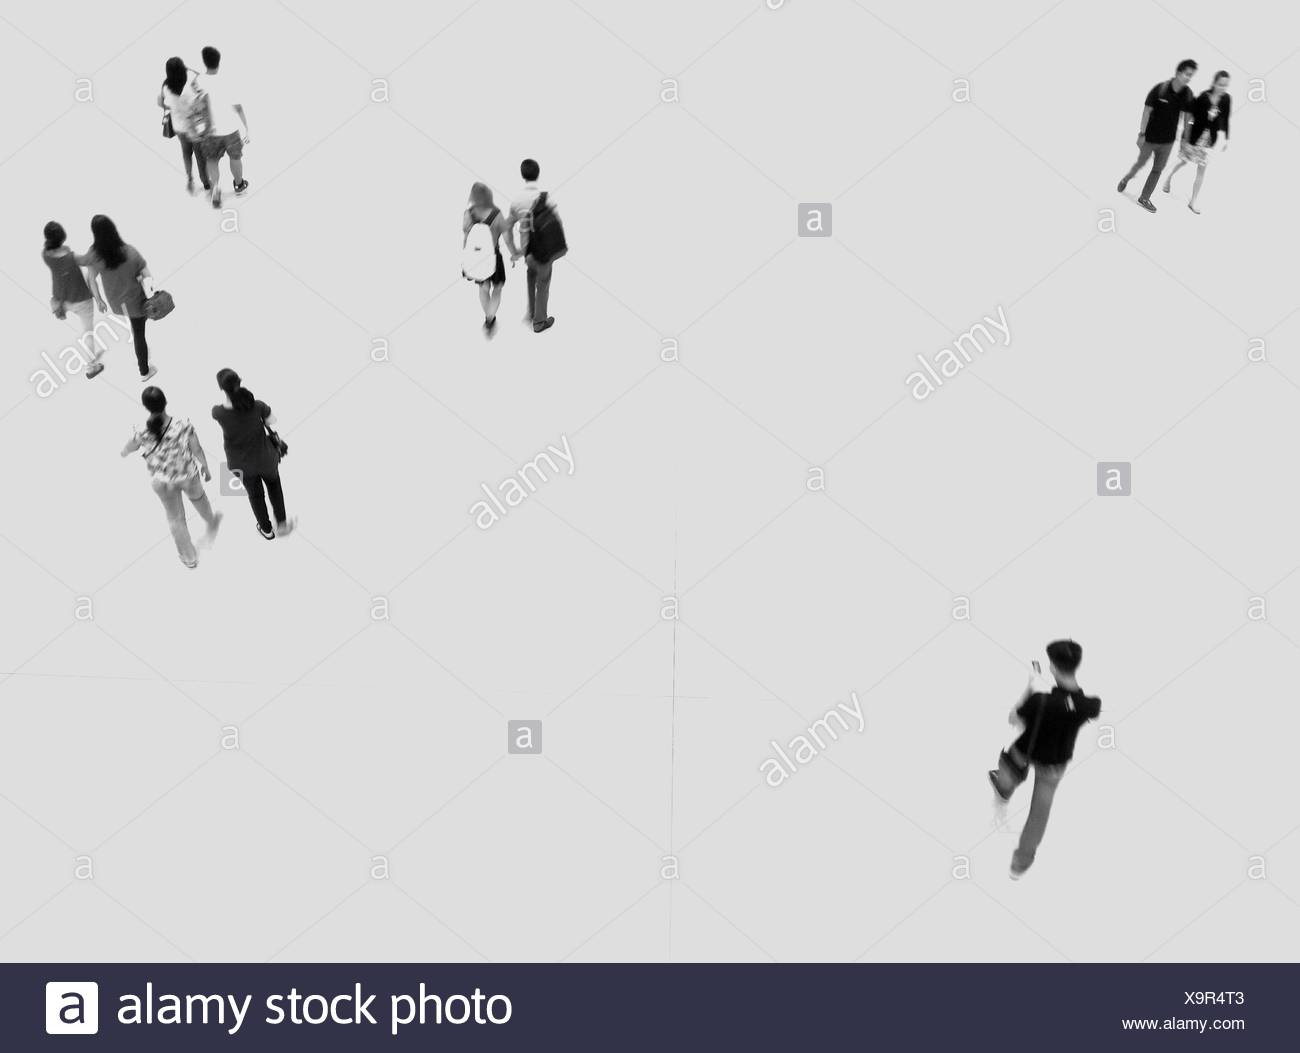 High Angle View Of People Walking On Floor - Stock Image